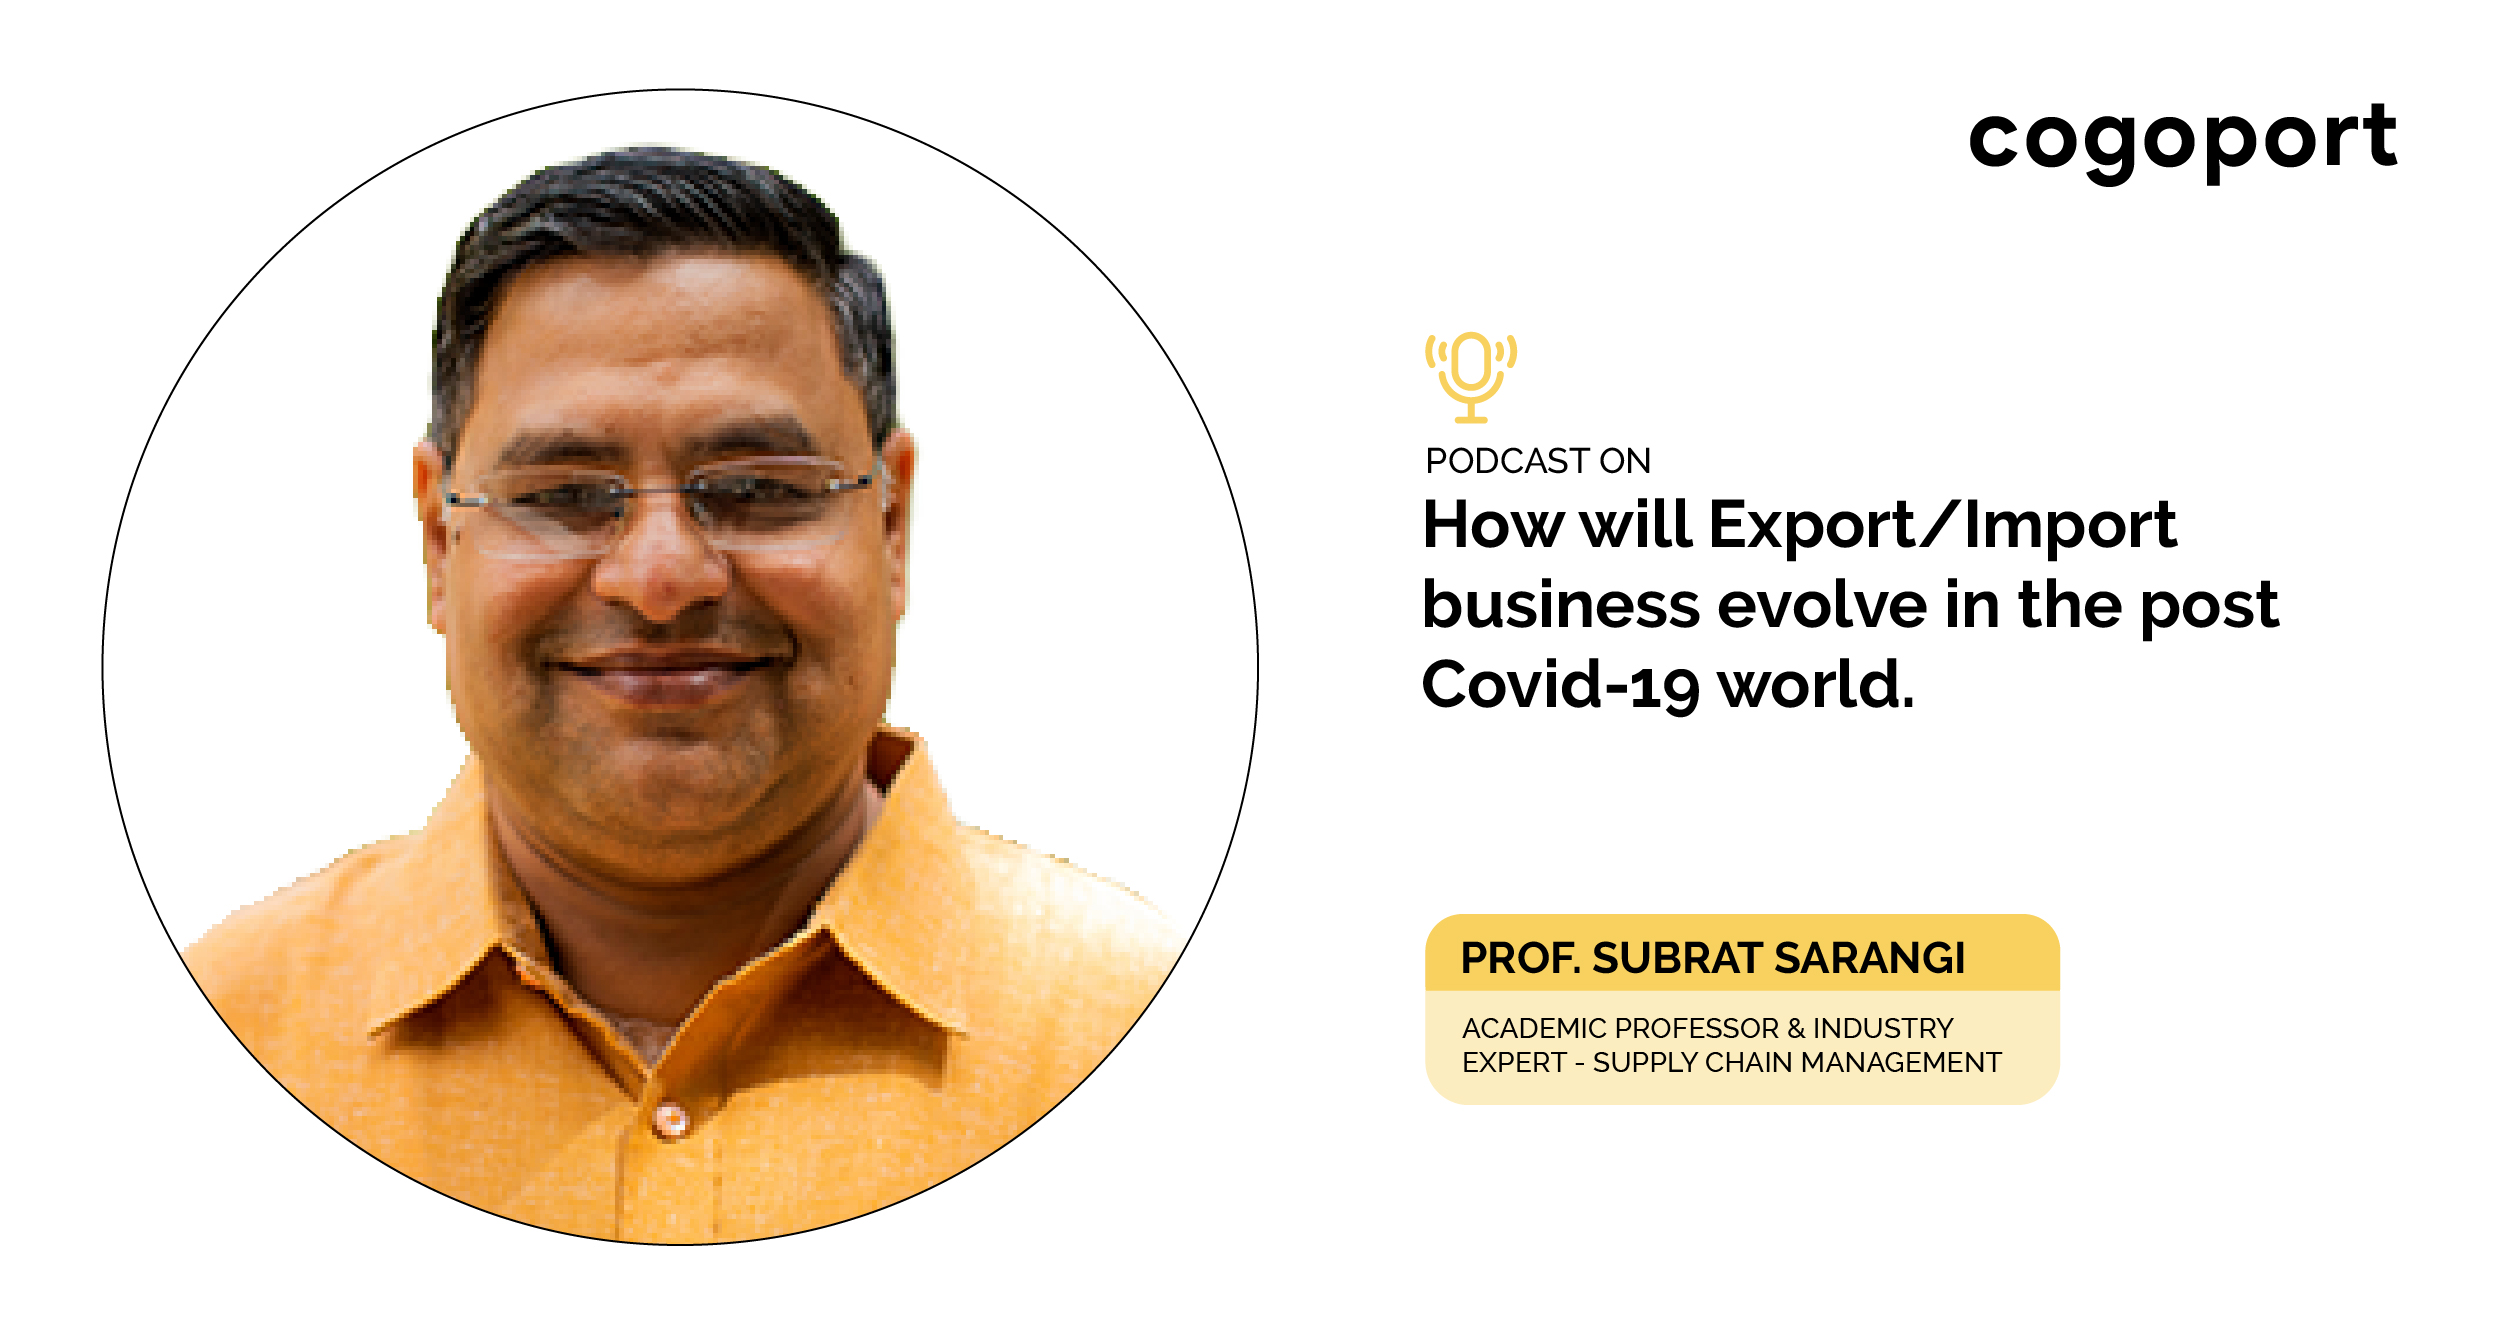 How Will Export/Import Business Evolve Post Covid - A Podcast